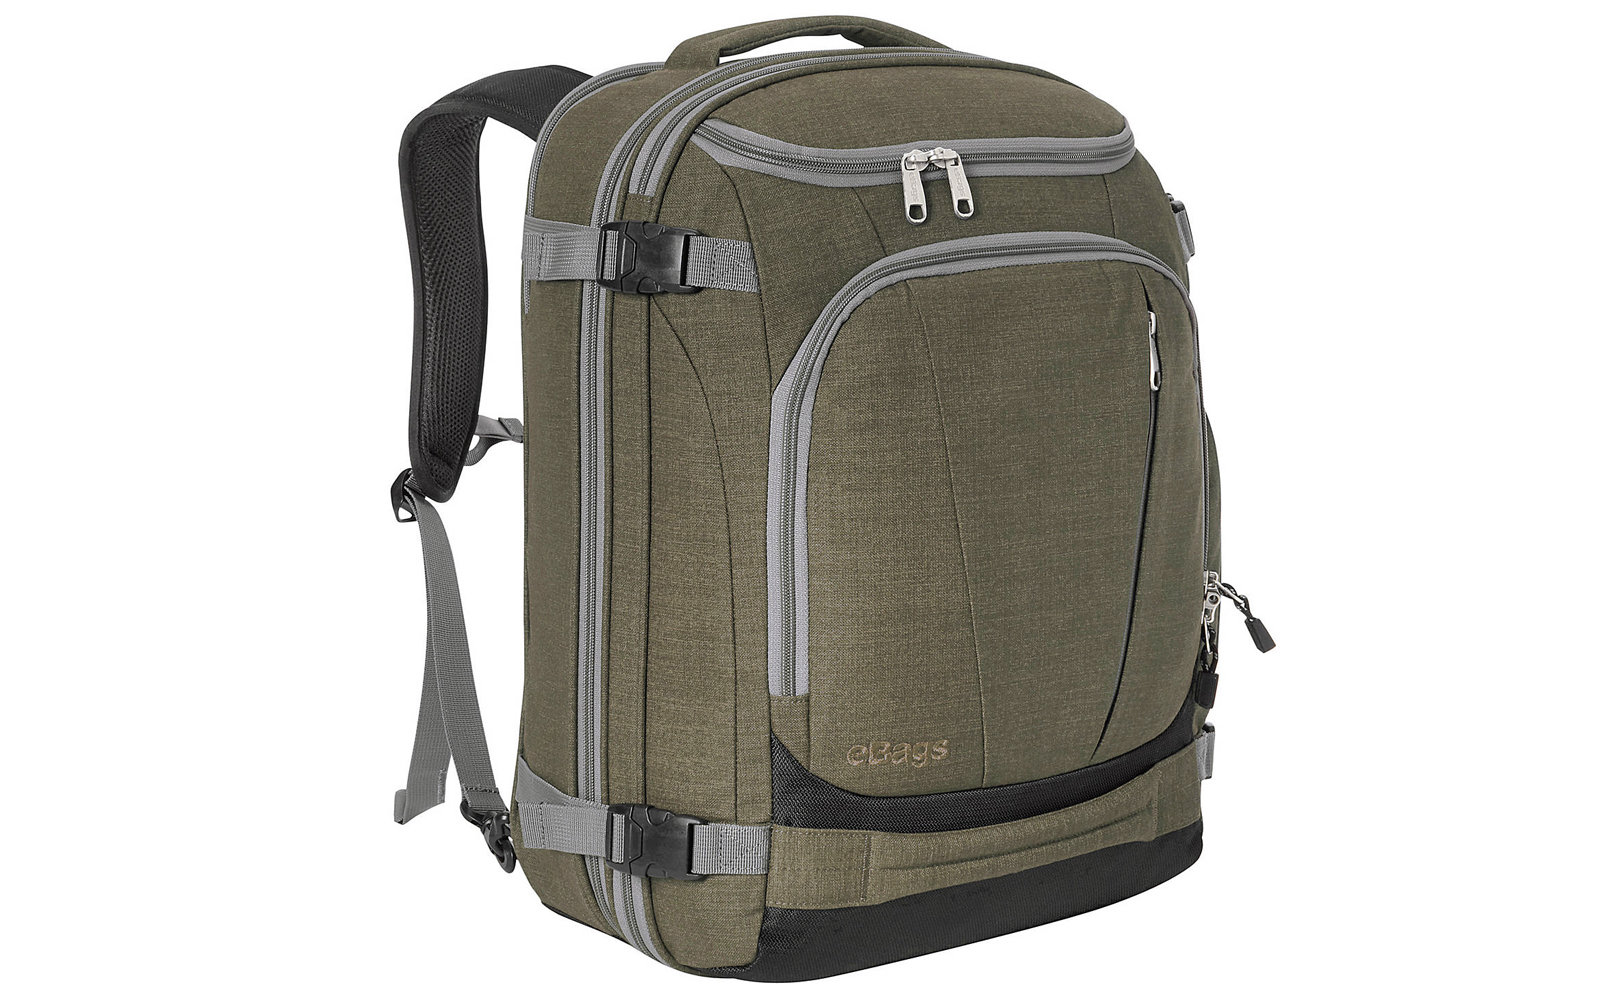 eBags Weekender Convertible Backpack